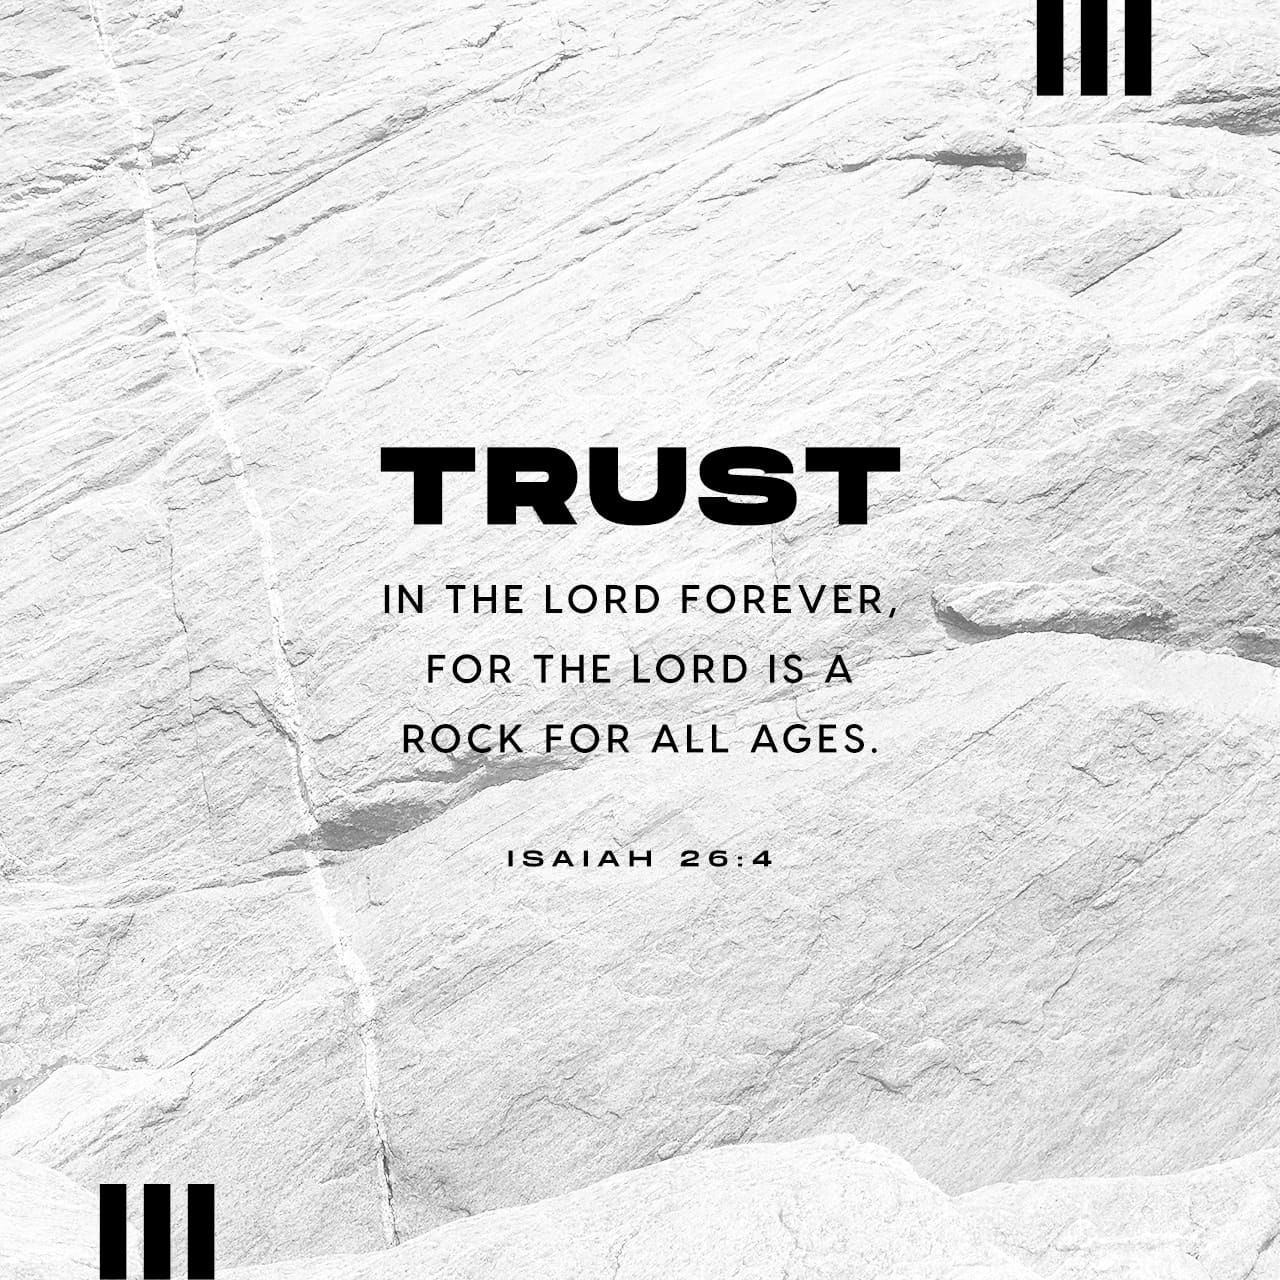 Isaiah 26 4 Trust Ye In The Lord For Ever For In The Lord Jehovah Is Everlasting Strength King James Version Kjv Download The Bible Apps Isaiah 26 Bible